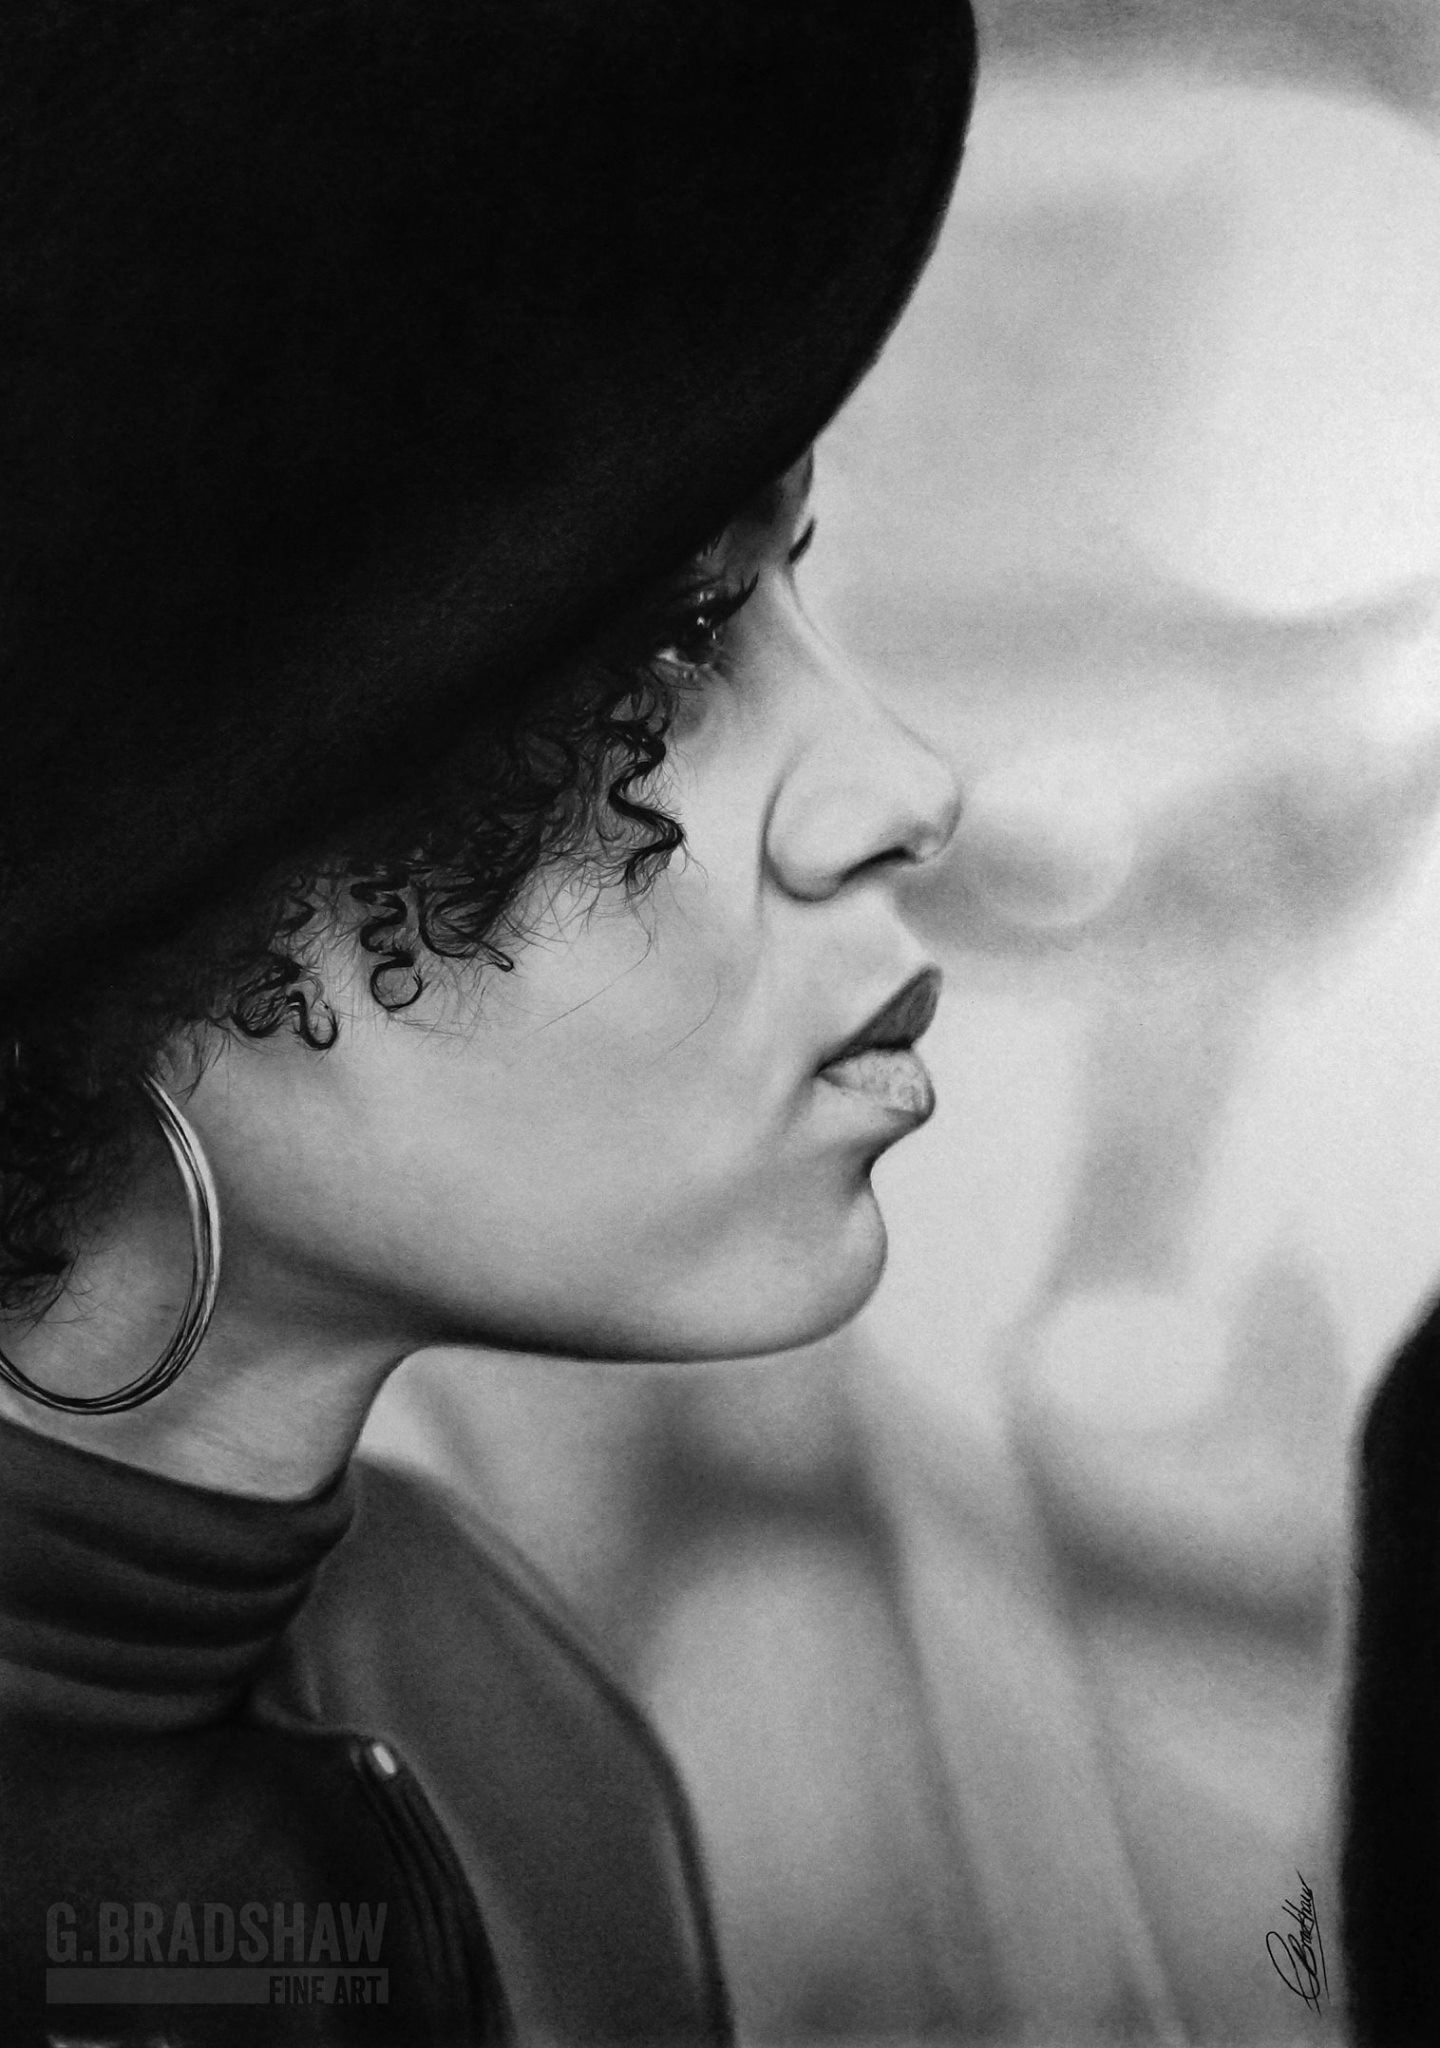 Pin by Graham Bradshaw on Graphite pencil drawings Fine